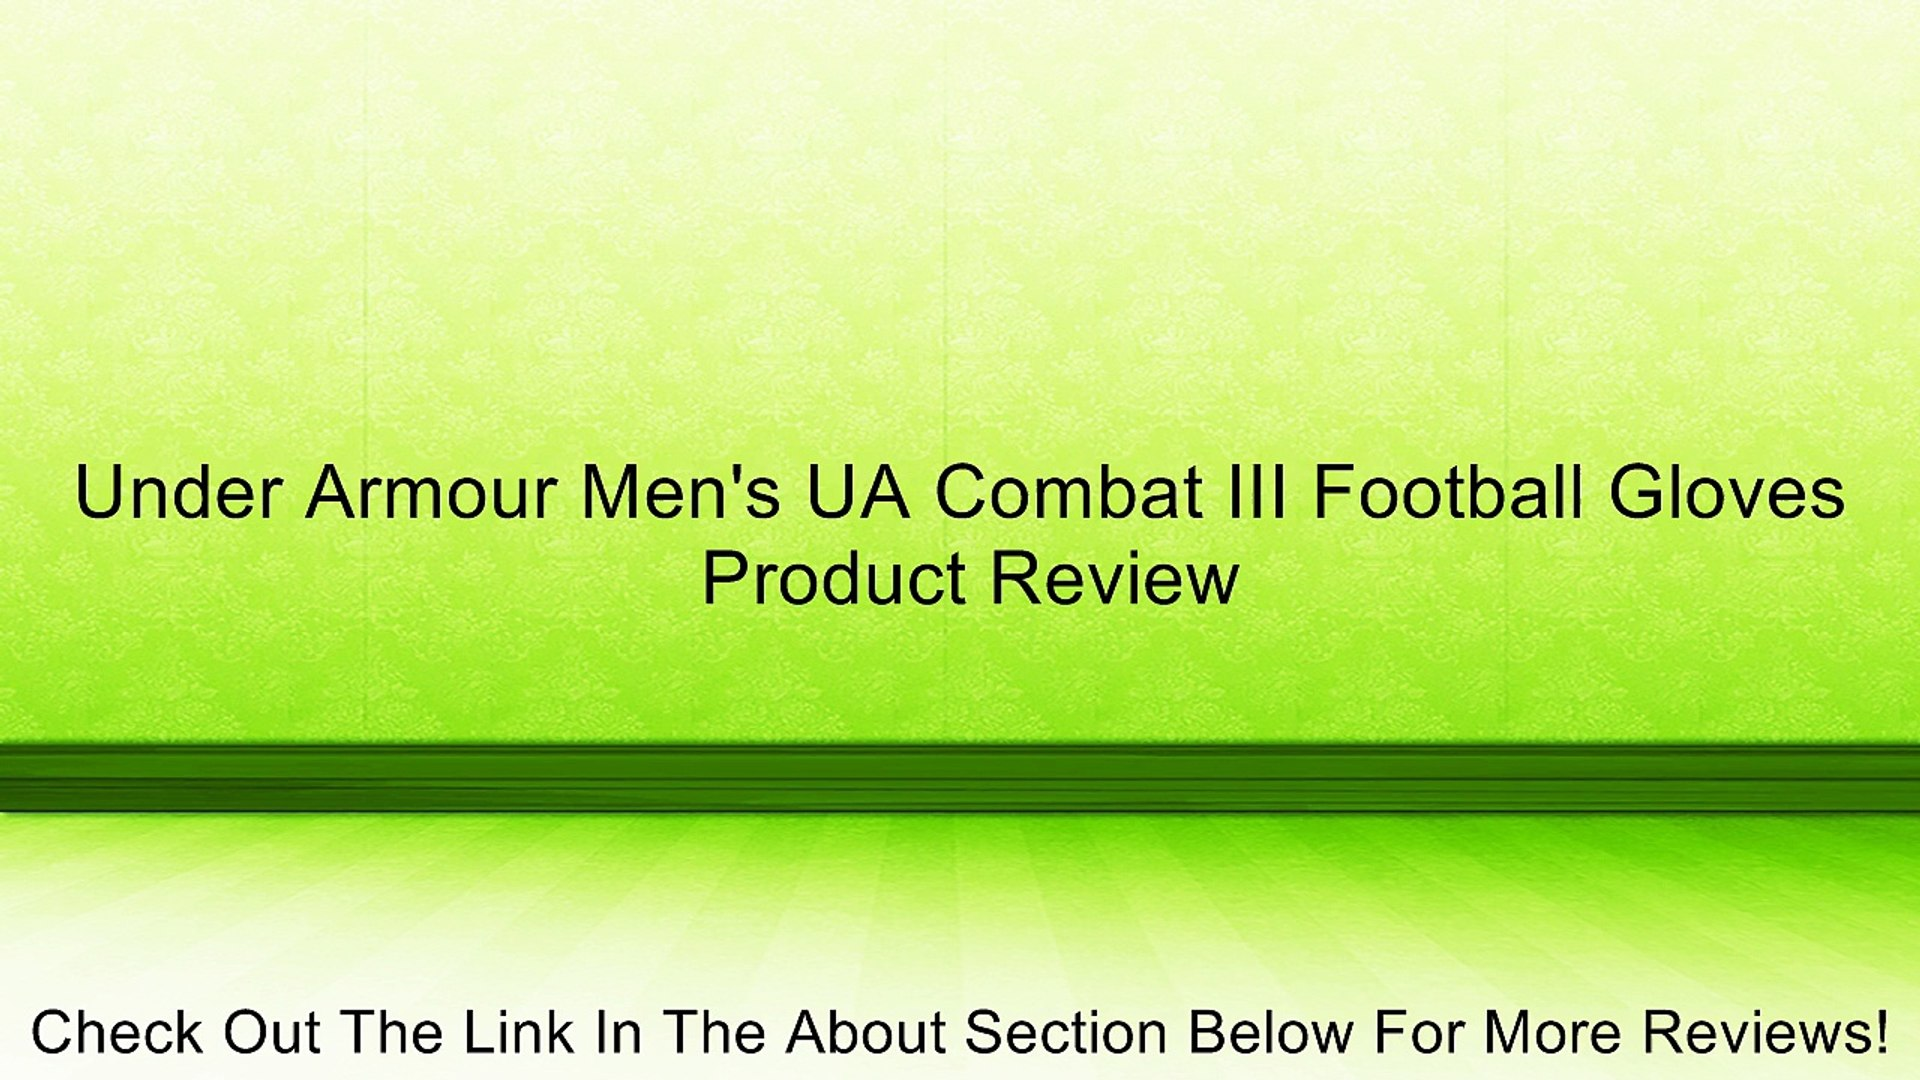 Under Armour Men's UA Combat III Football Gloves Review